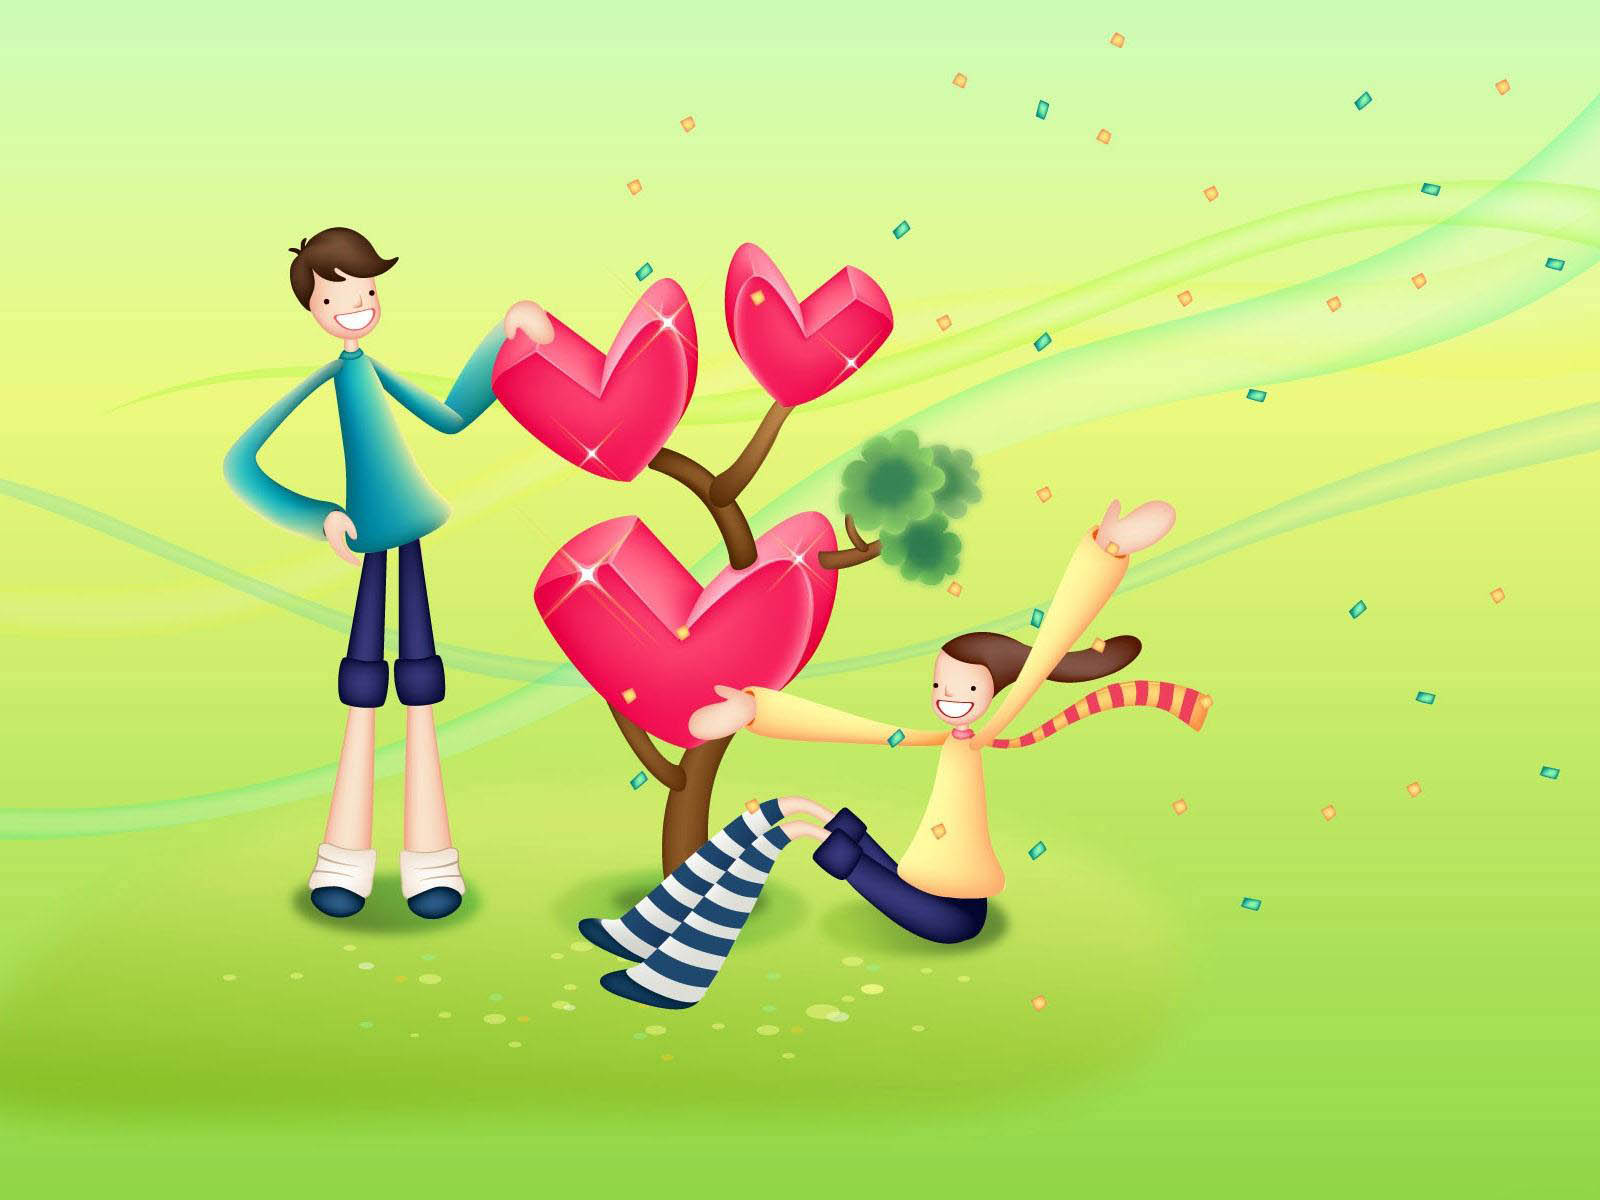 Love Animation Wallpaper In Hd : wallpapers: Romantic Love Wallpapers